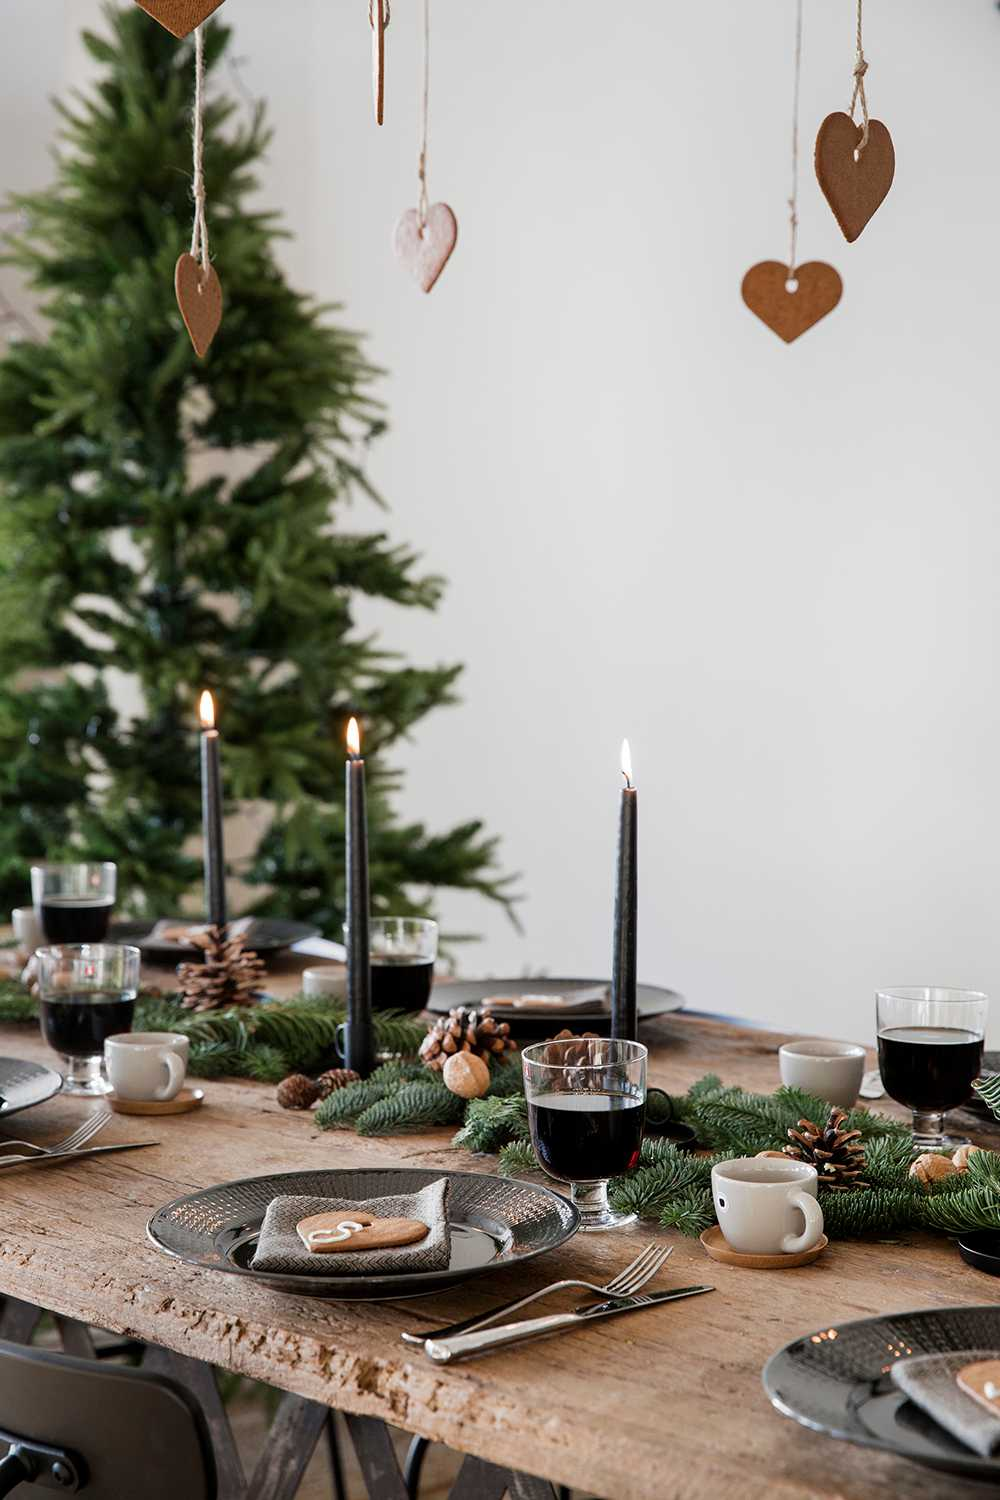 Rustic Christmas Table Runner Ideas